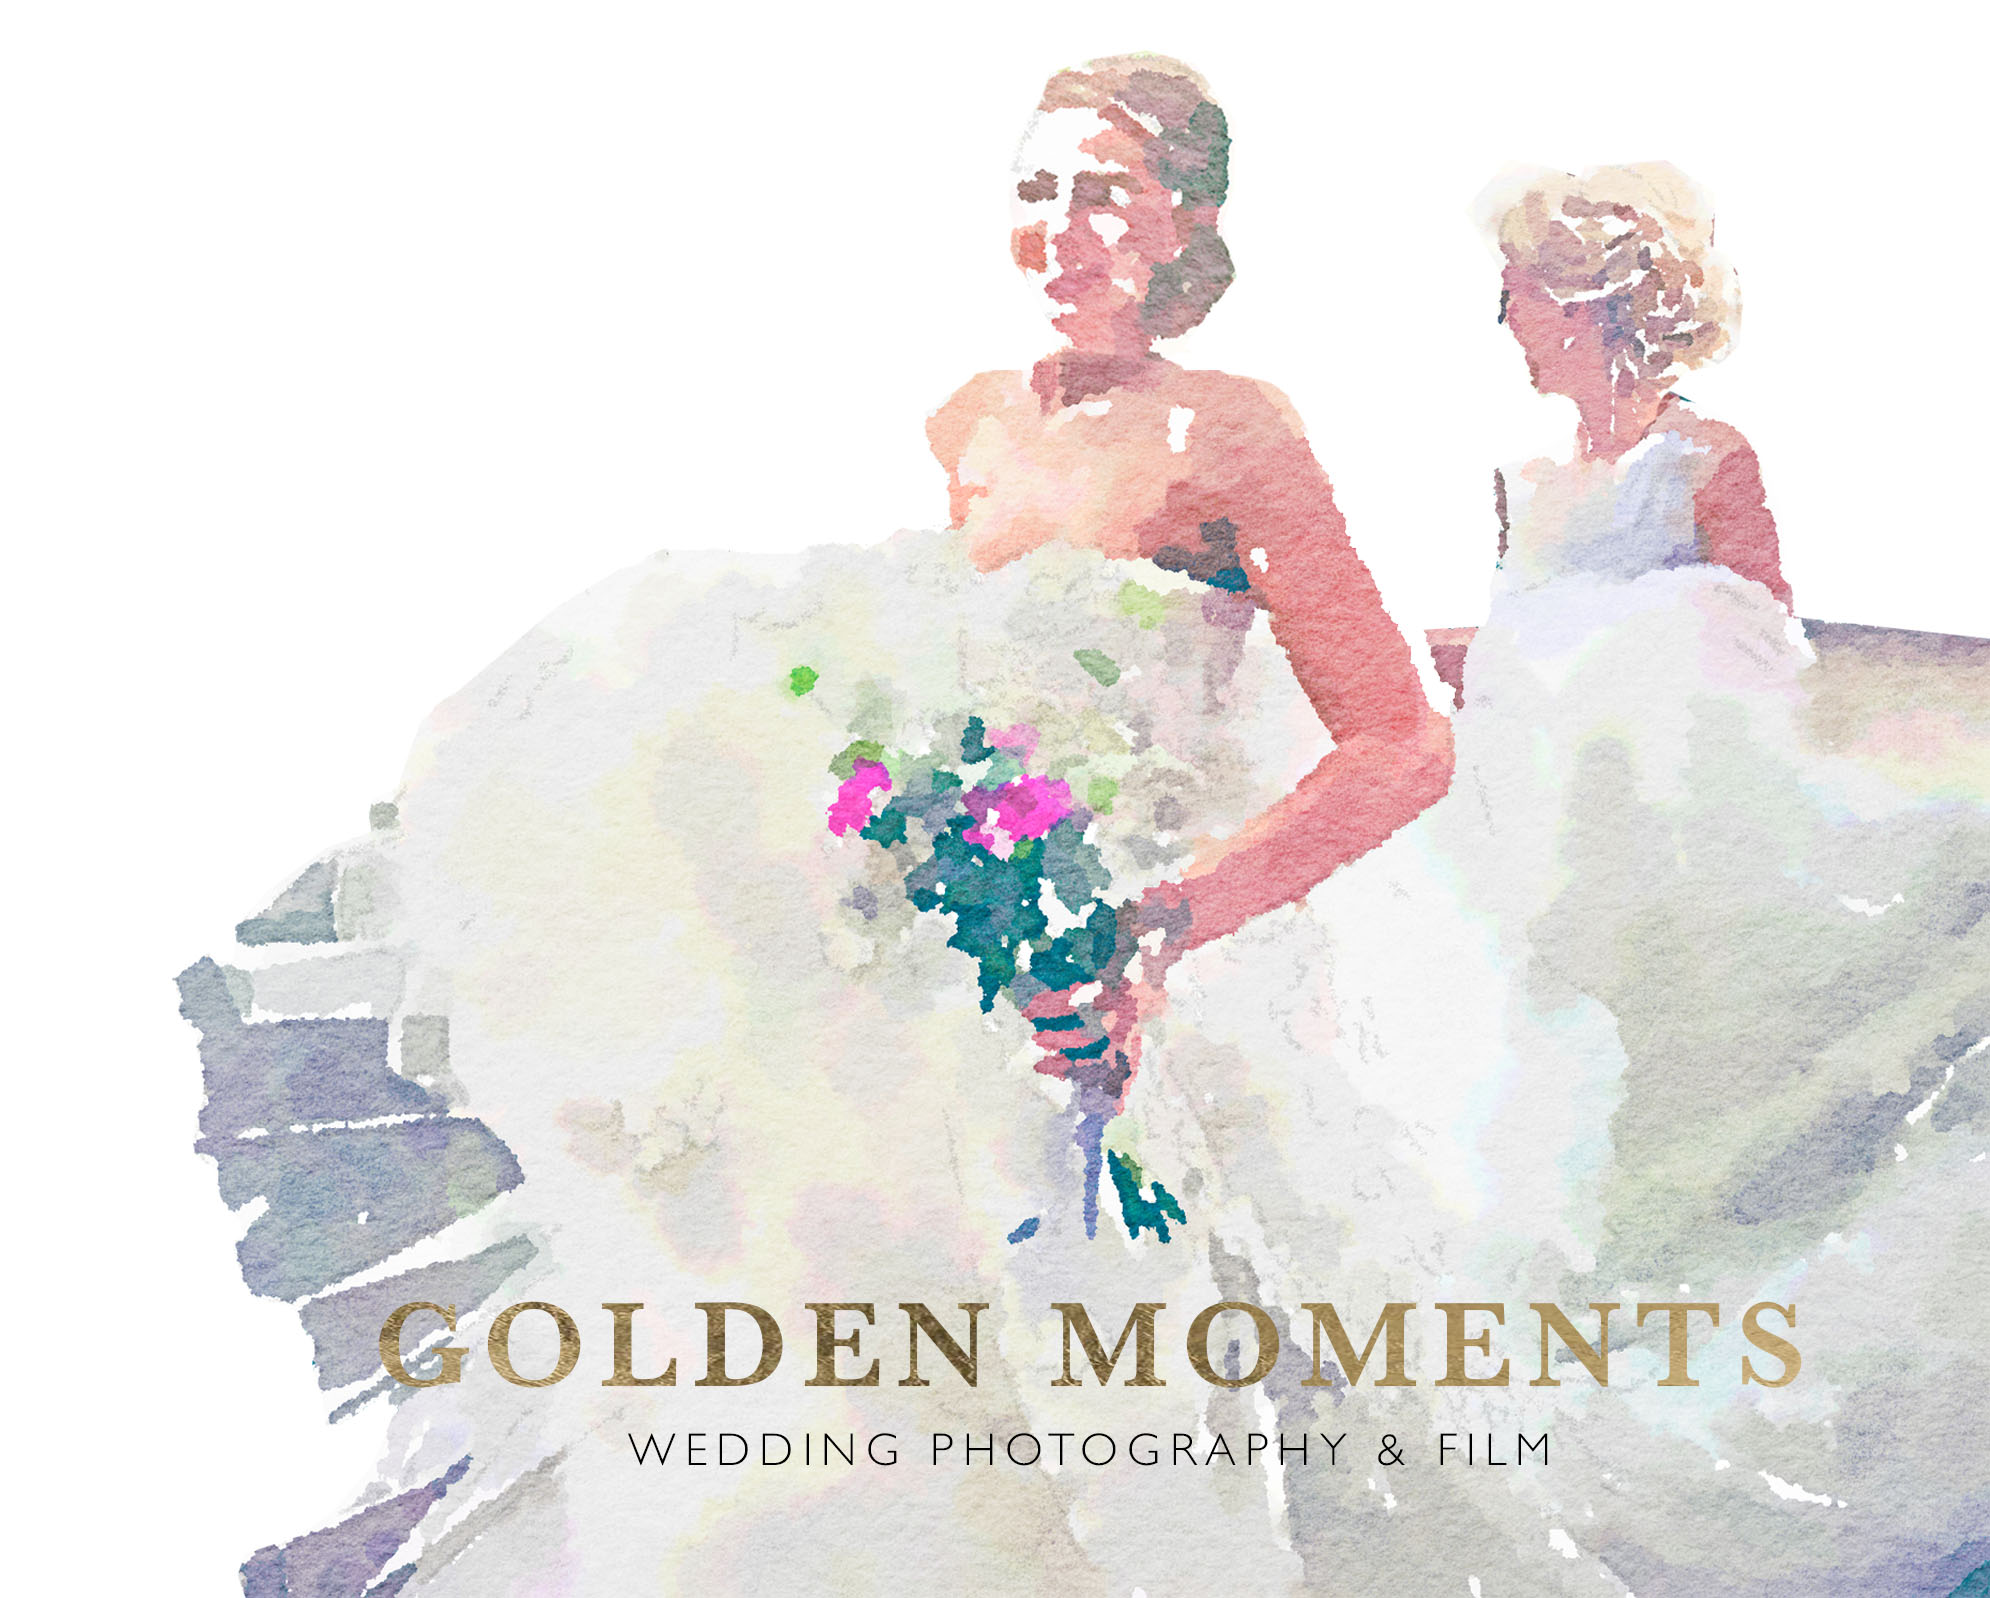 Golden Moments Wedding Photography & Film